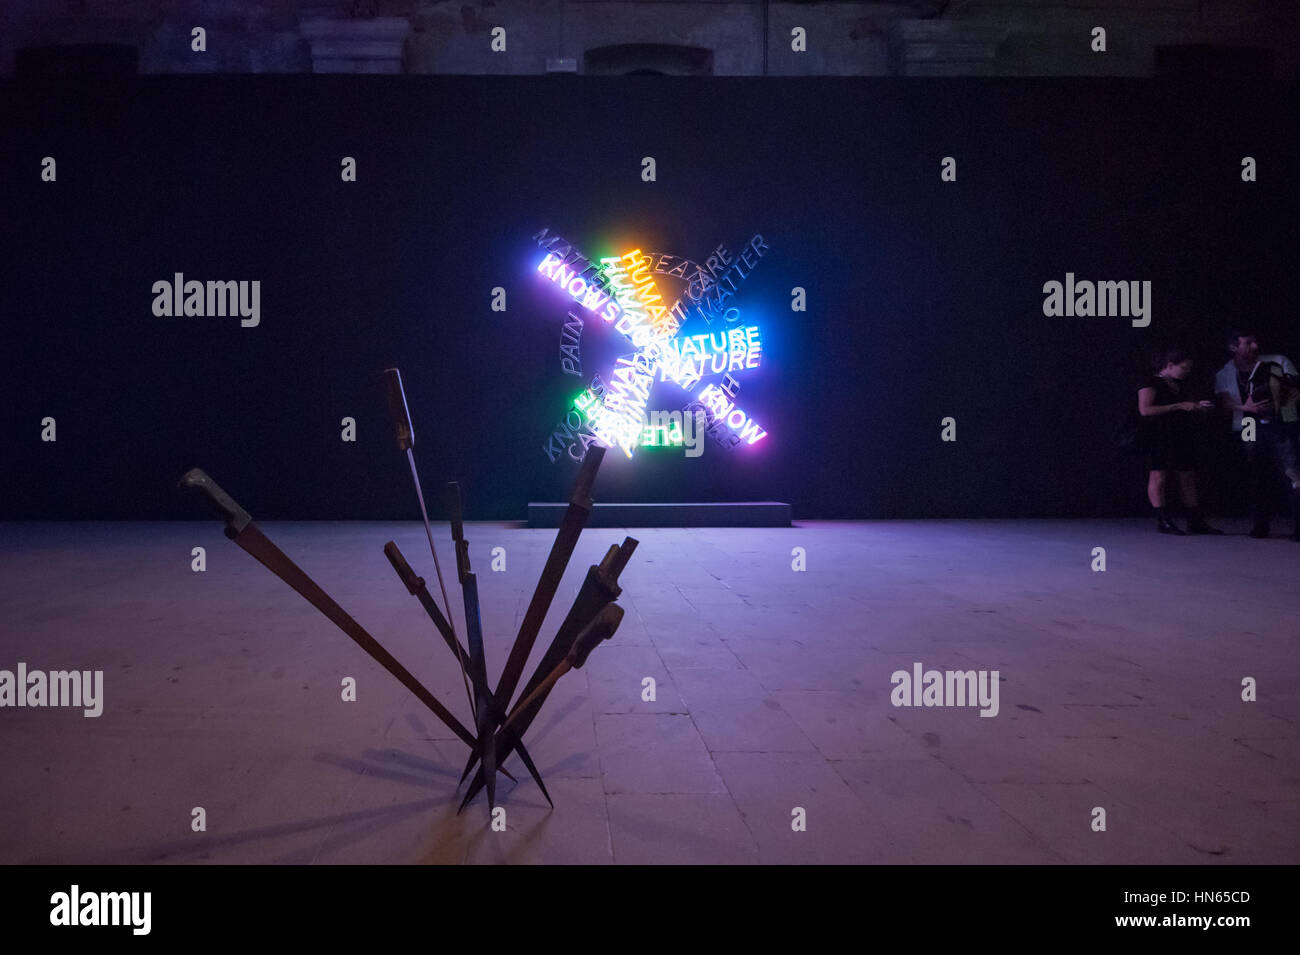 The artworks Human Nature/Life by Bruce Nauman and Nymphéas by Adel Abdessemed at the Venice Art Biennale 2015 - Stock Image